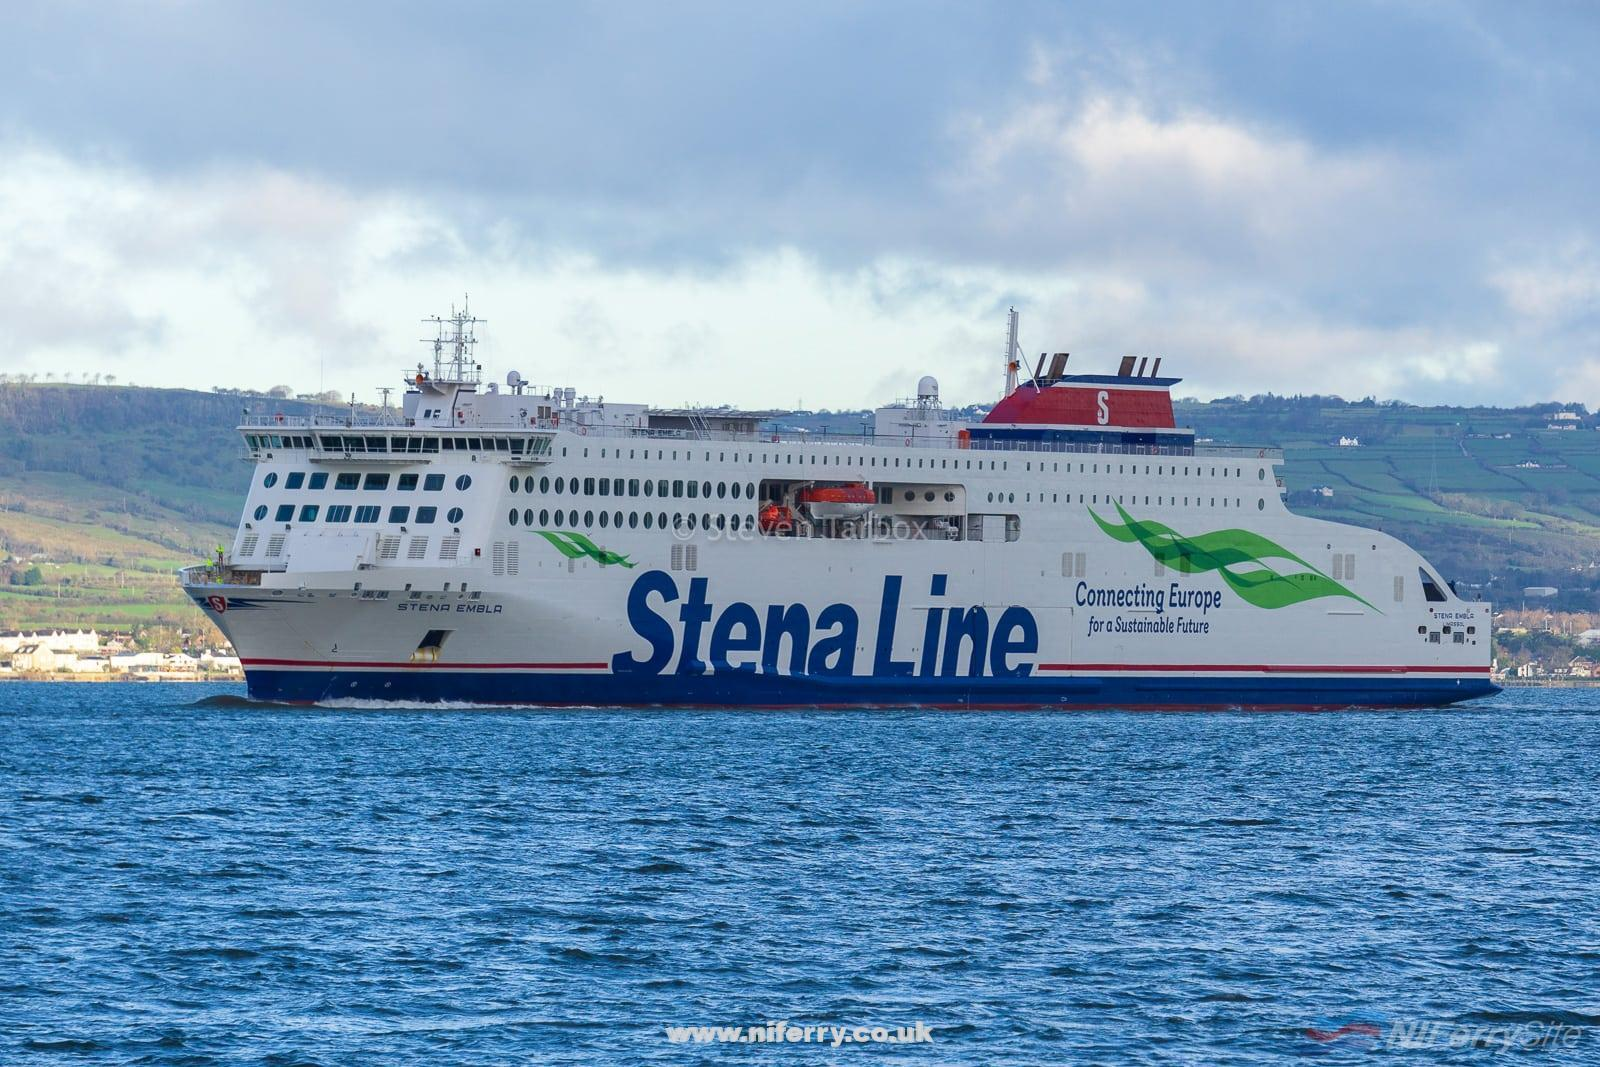 STENA EMBLA arrives at Belfast after a 6,000+ mile journey from China. Copyright © Steven Tarbox / niferry.co.uk.